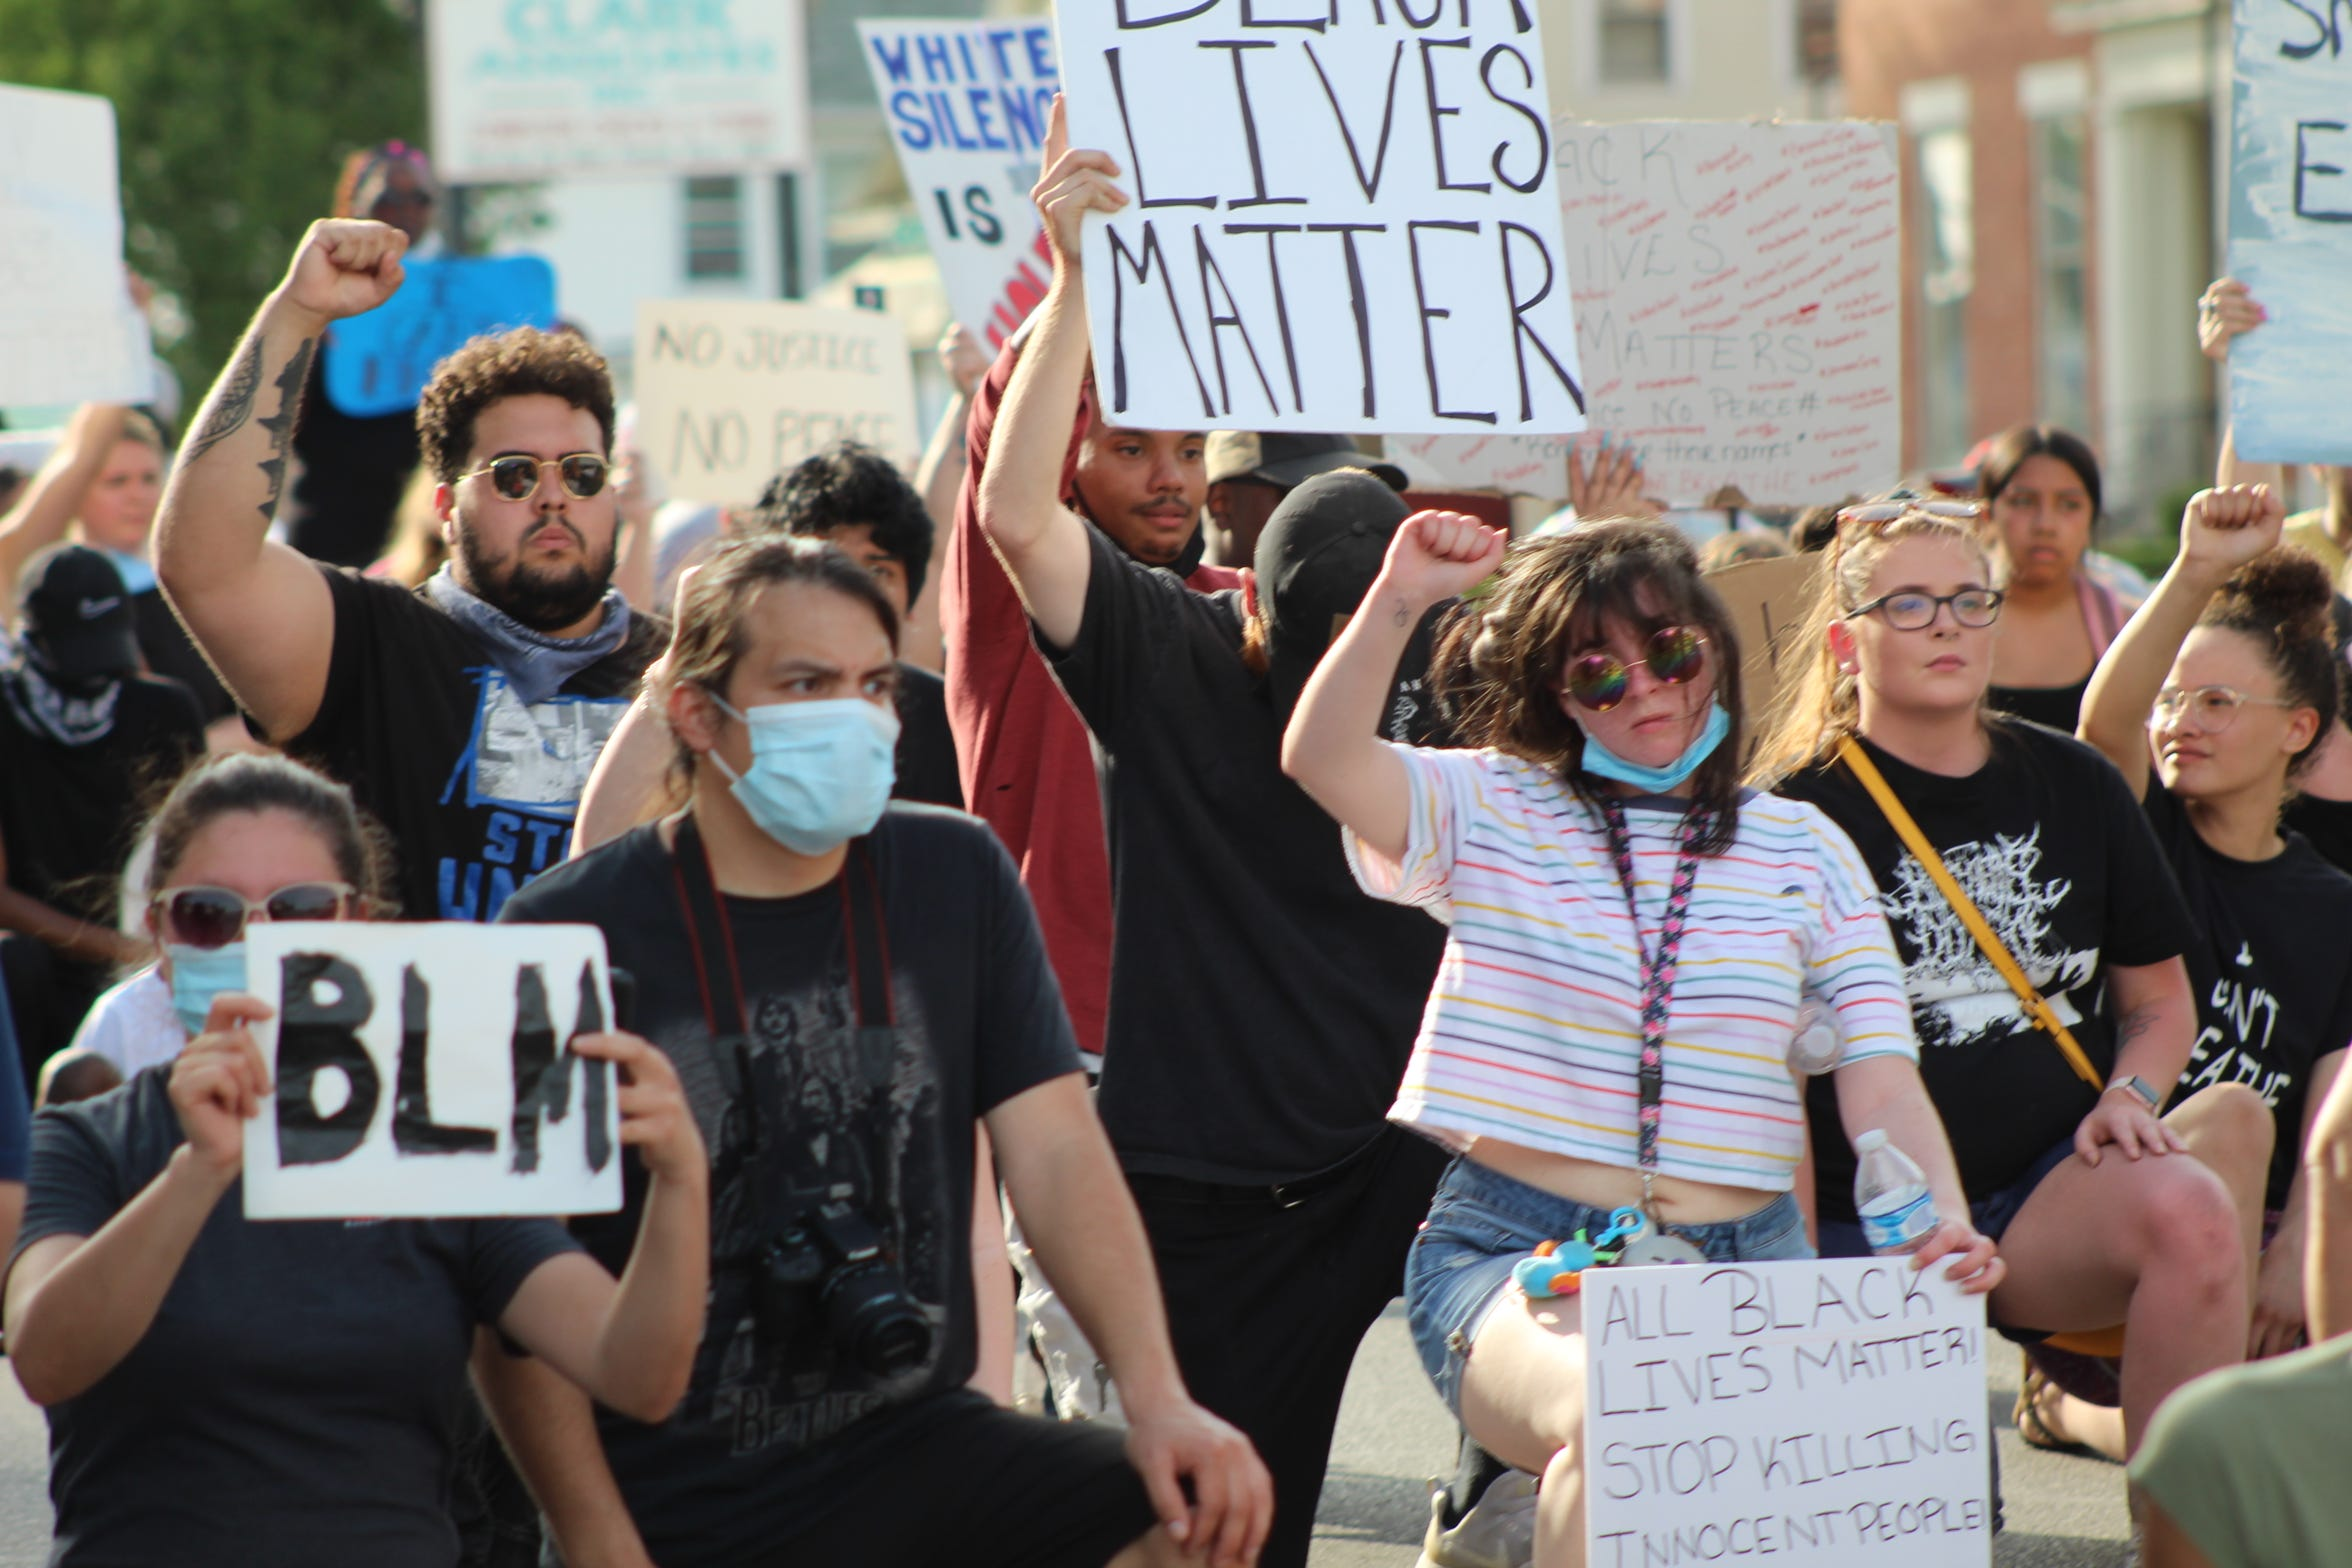 Protesters took a knee on West State Street to protest racism and police brutality Wednesday at the Anti-Racism Vigil: Stand for Justice for George Floyd and all victims of racist violence in Fremont.